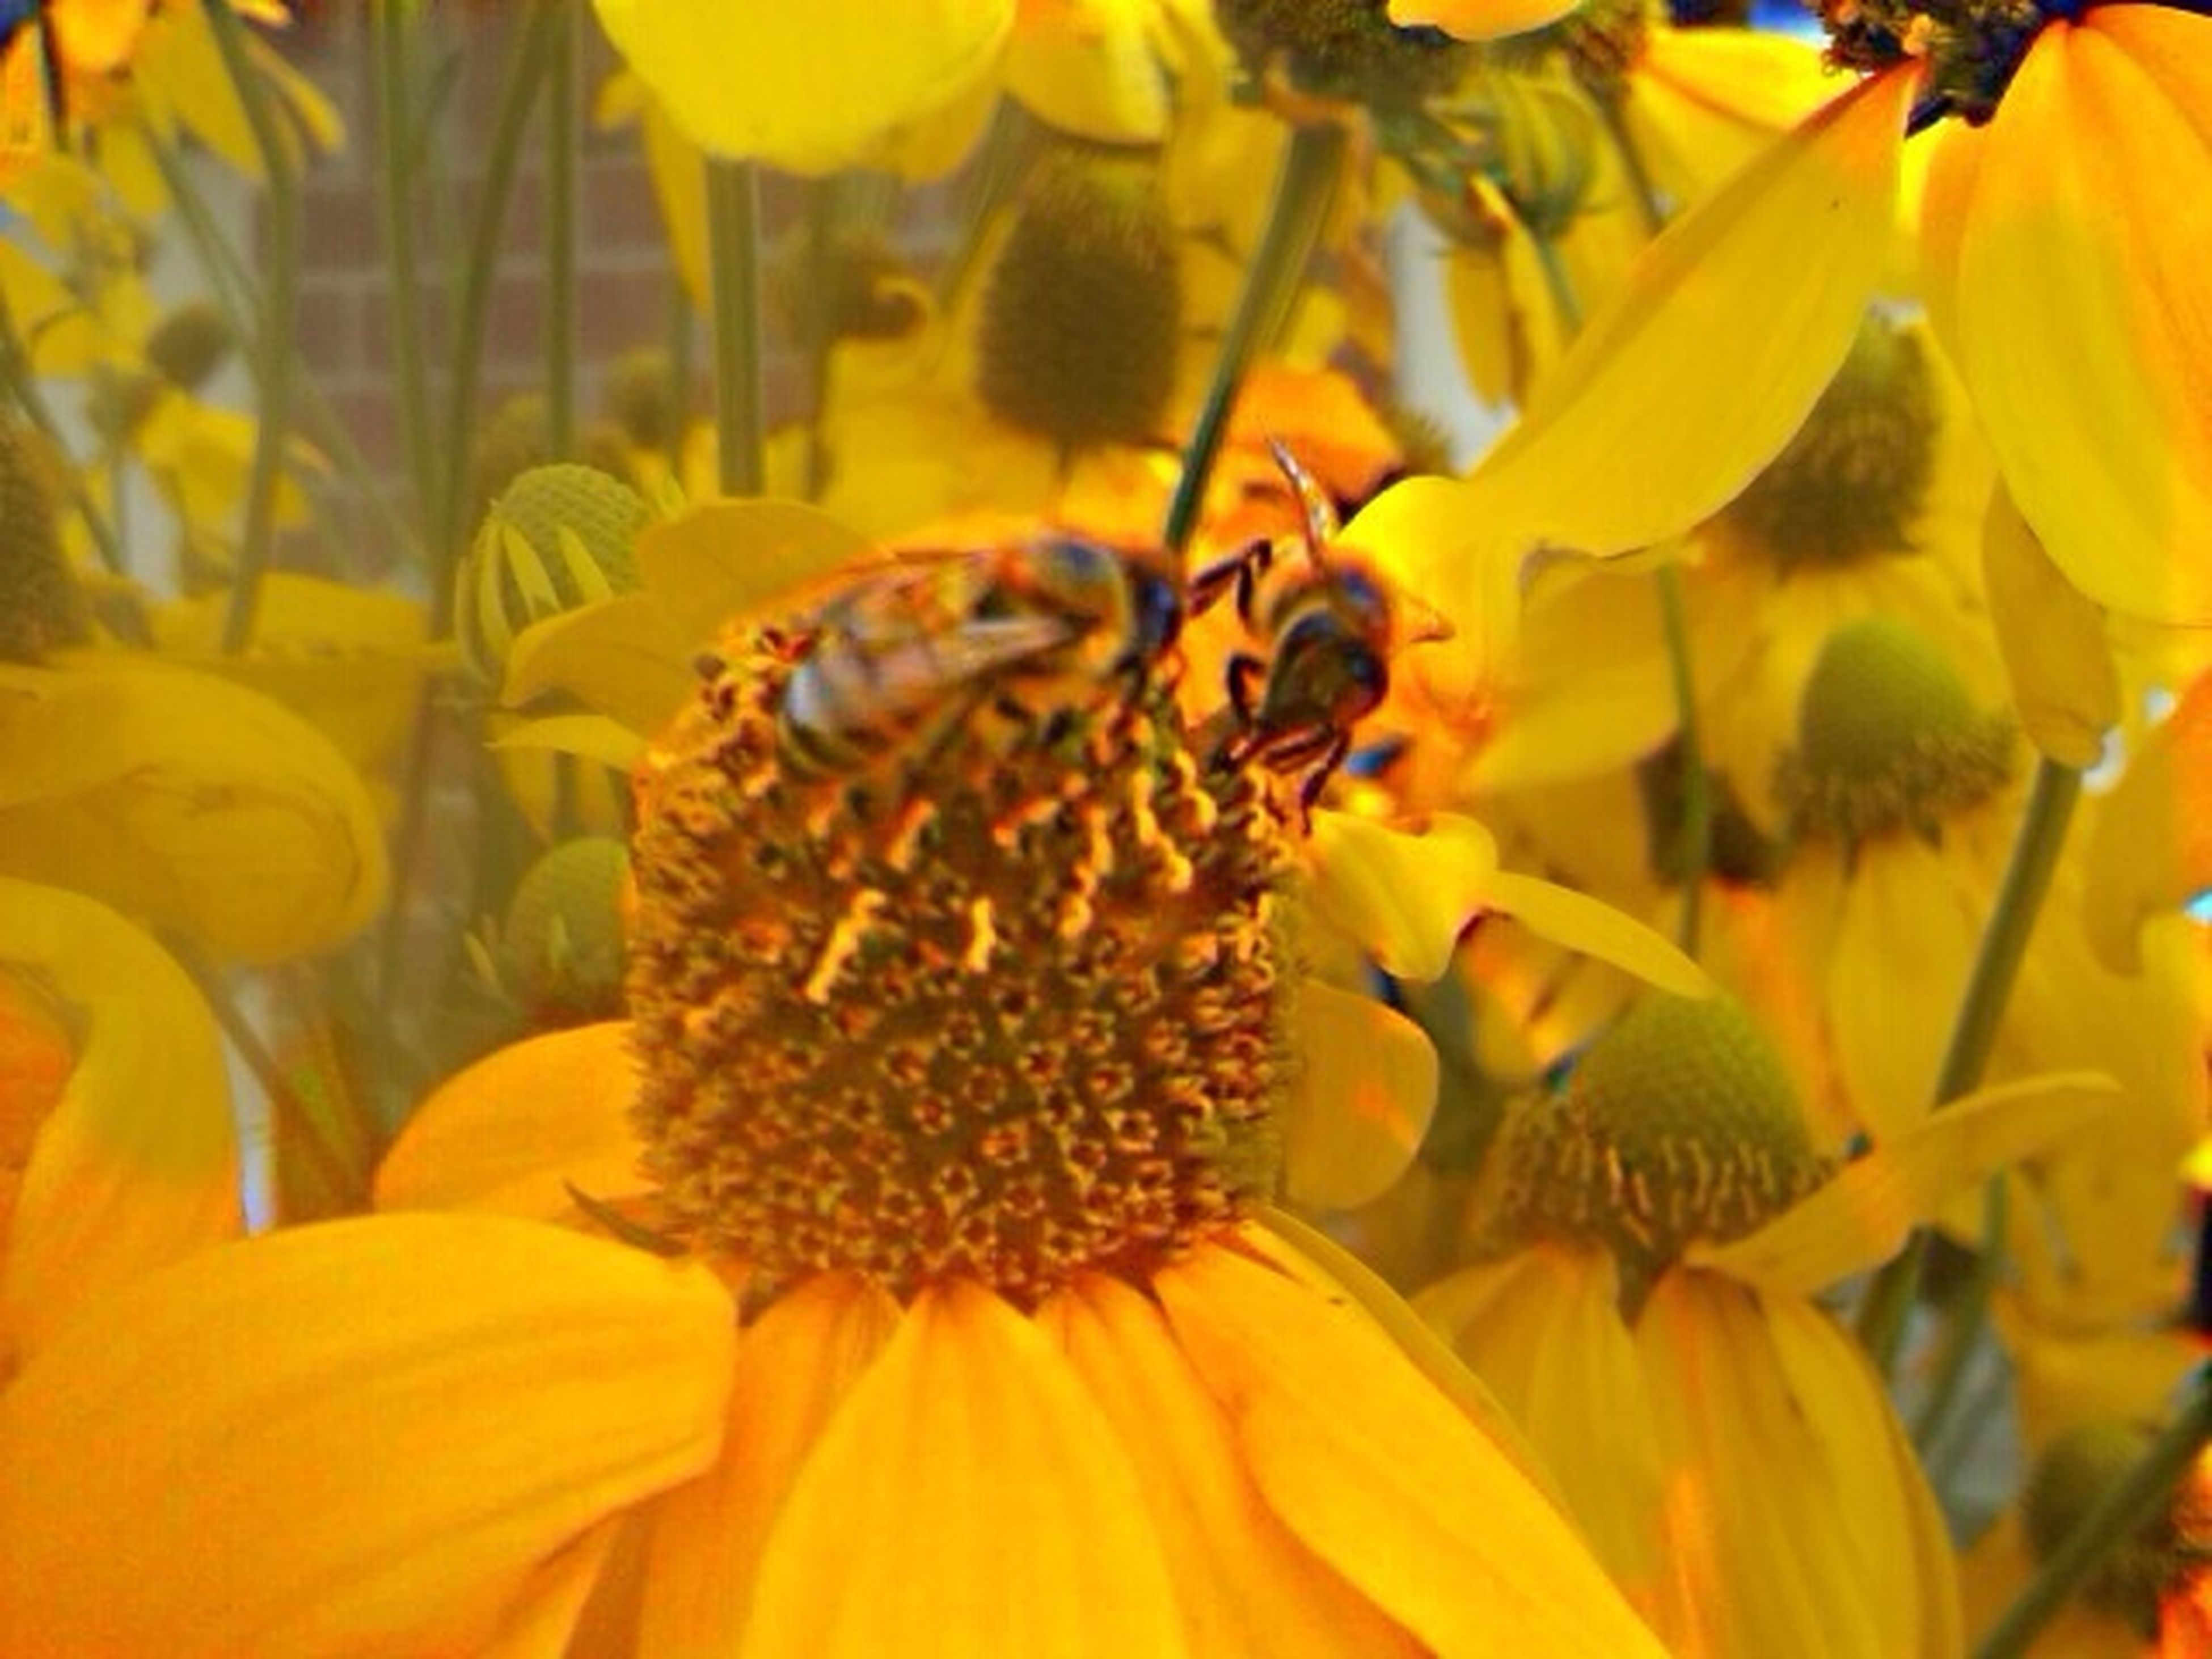 flower, animal themes, insect, petal, animals in the wild, one animal, wildlife, freshness, yellow, pollination, flower head, fragility, bee, close-up, beauty in nature, pollen, growth, nature, symbiotic relationship, honey bee